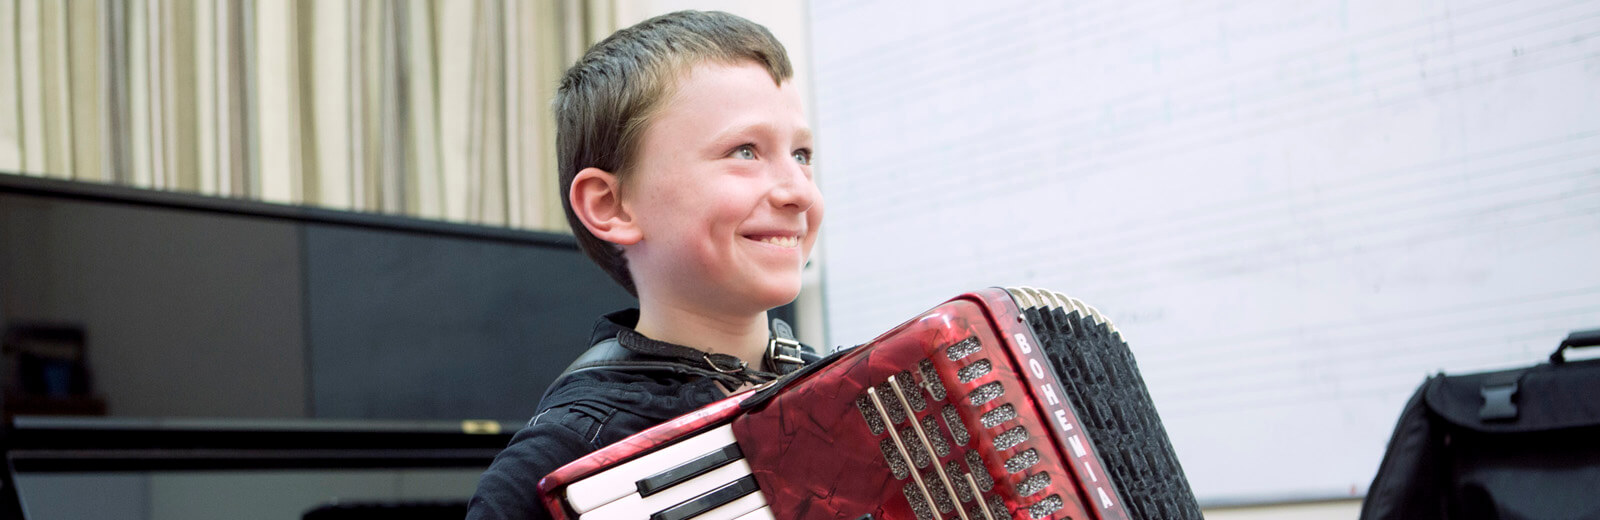 Accordion Online Summer School Image